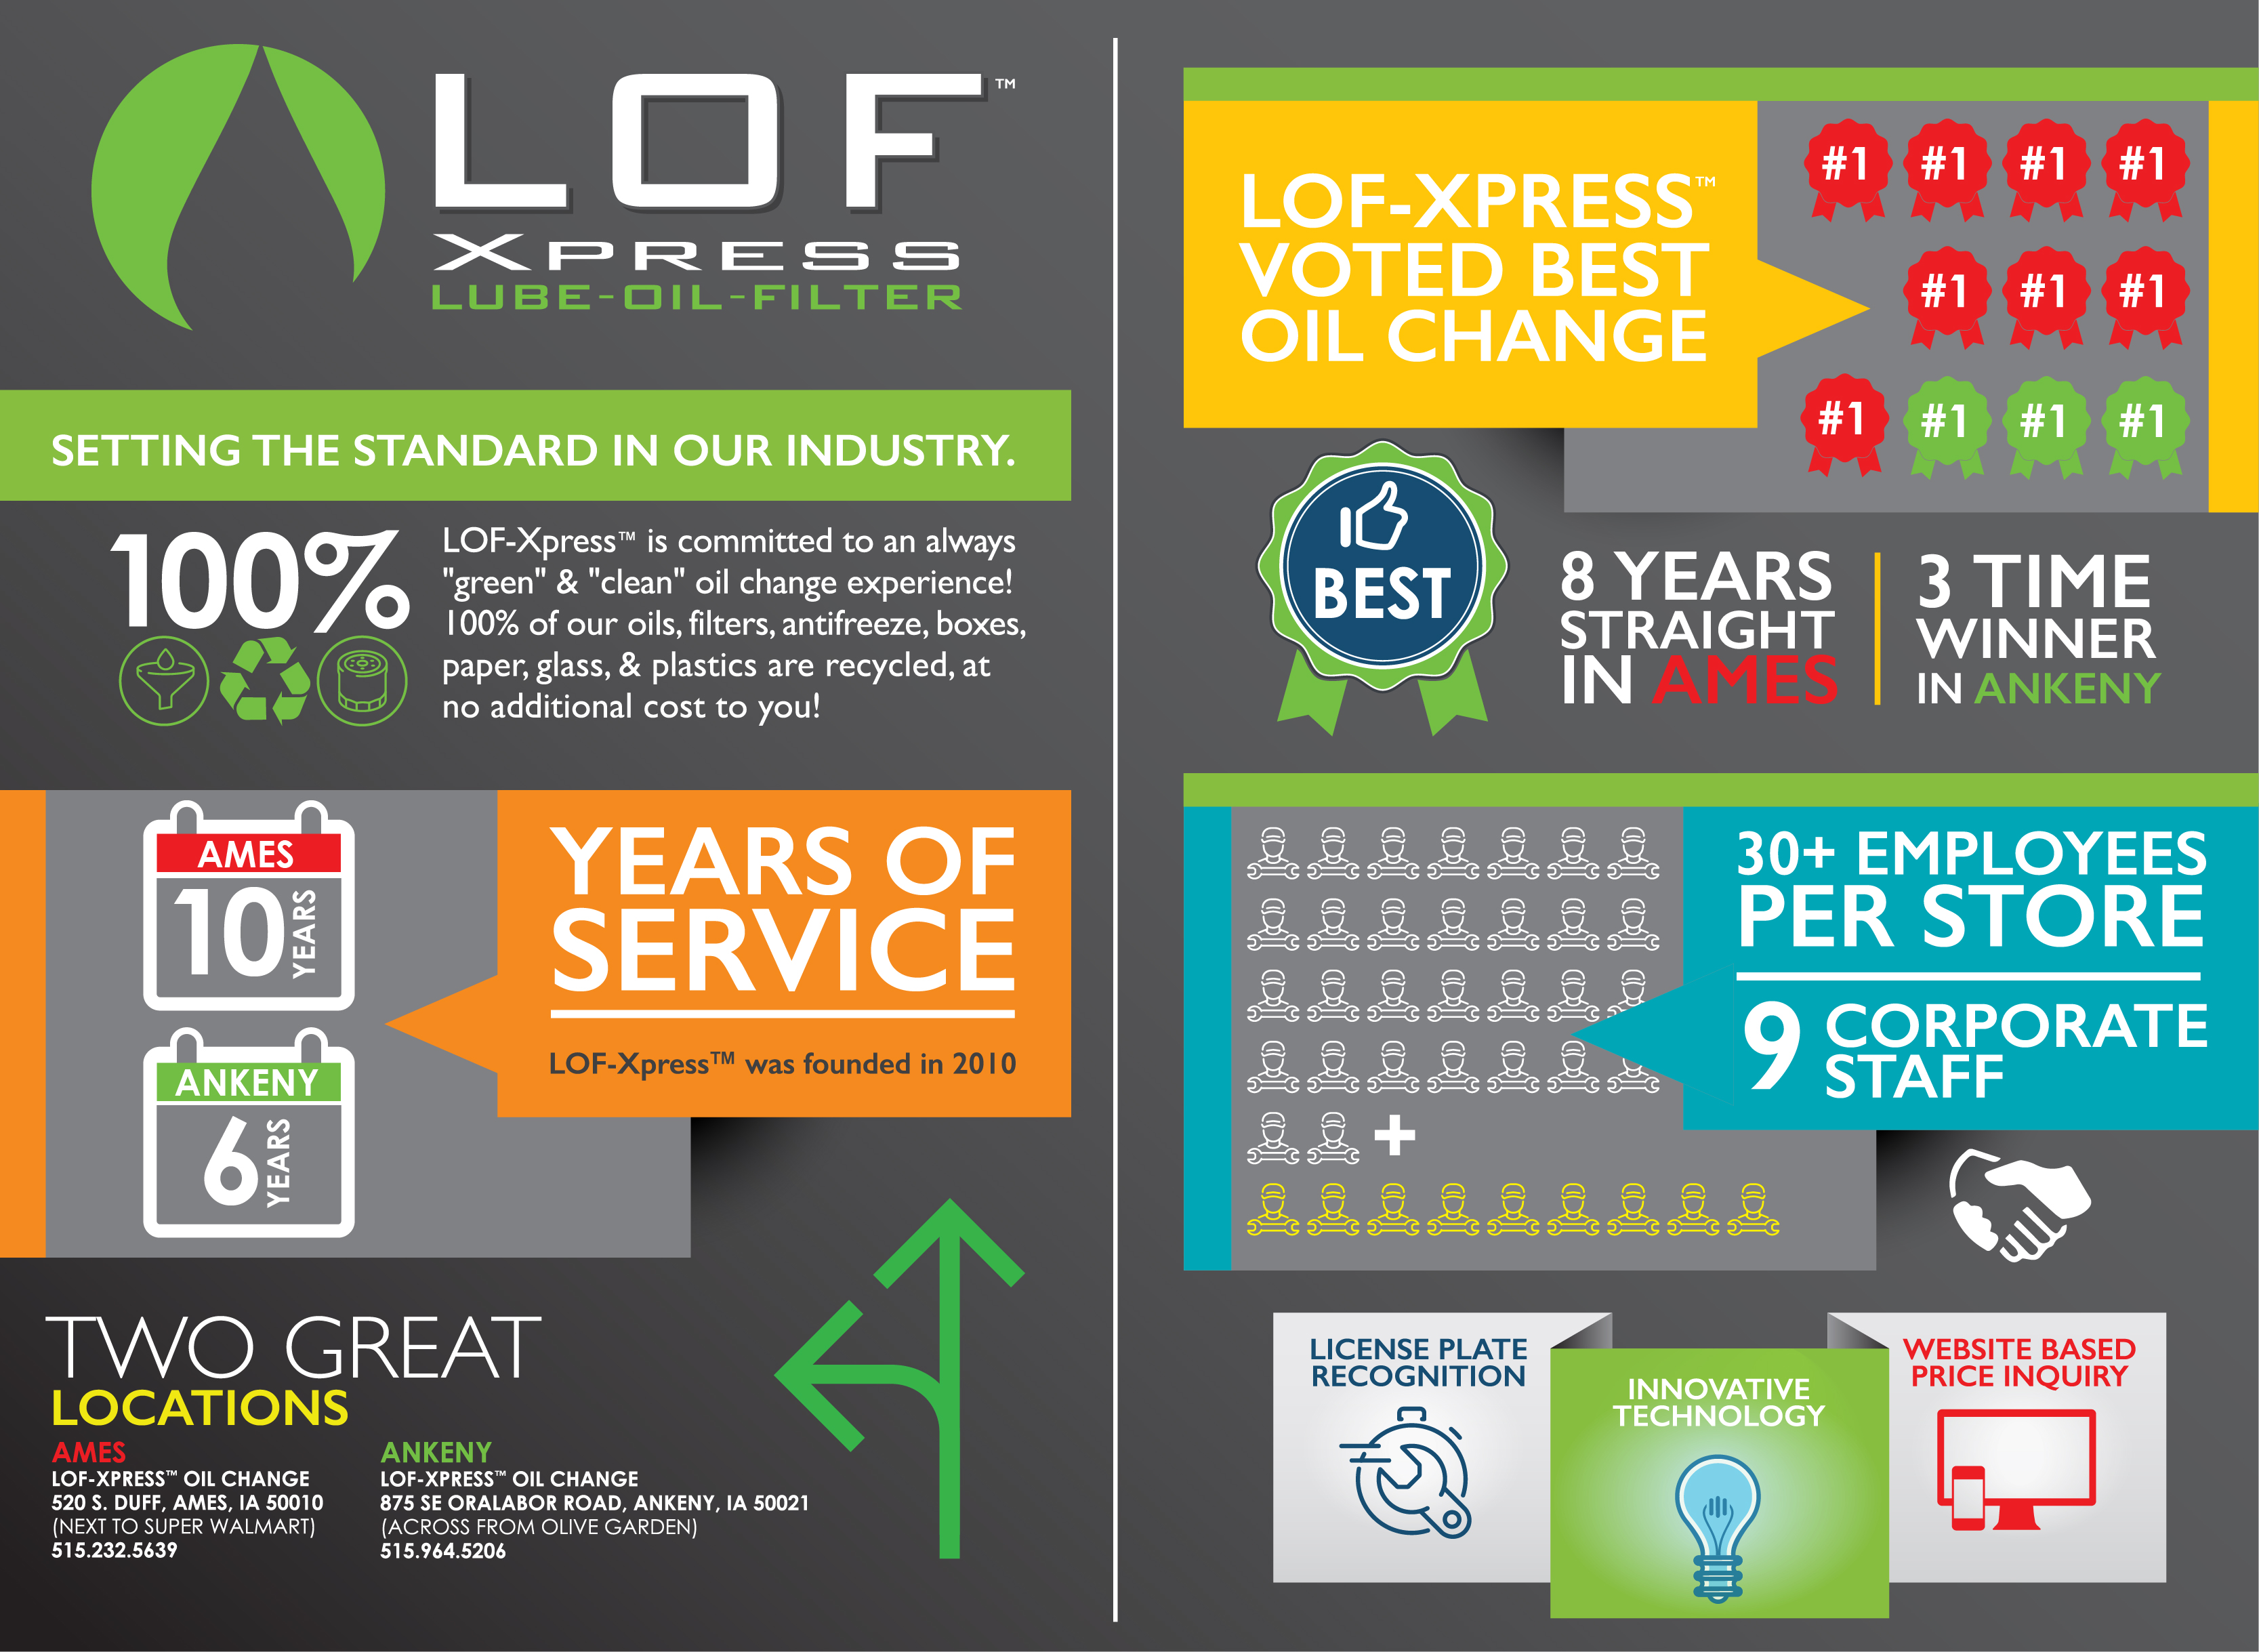 About LOF-Xpress Oil and Lube